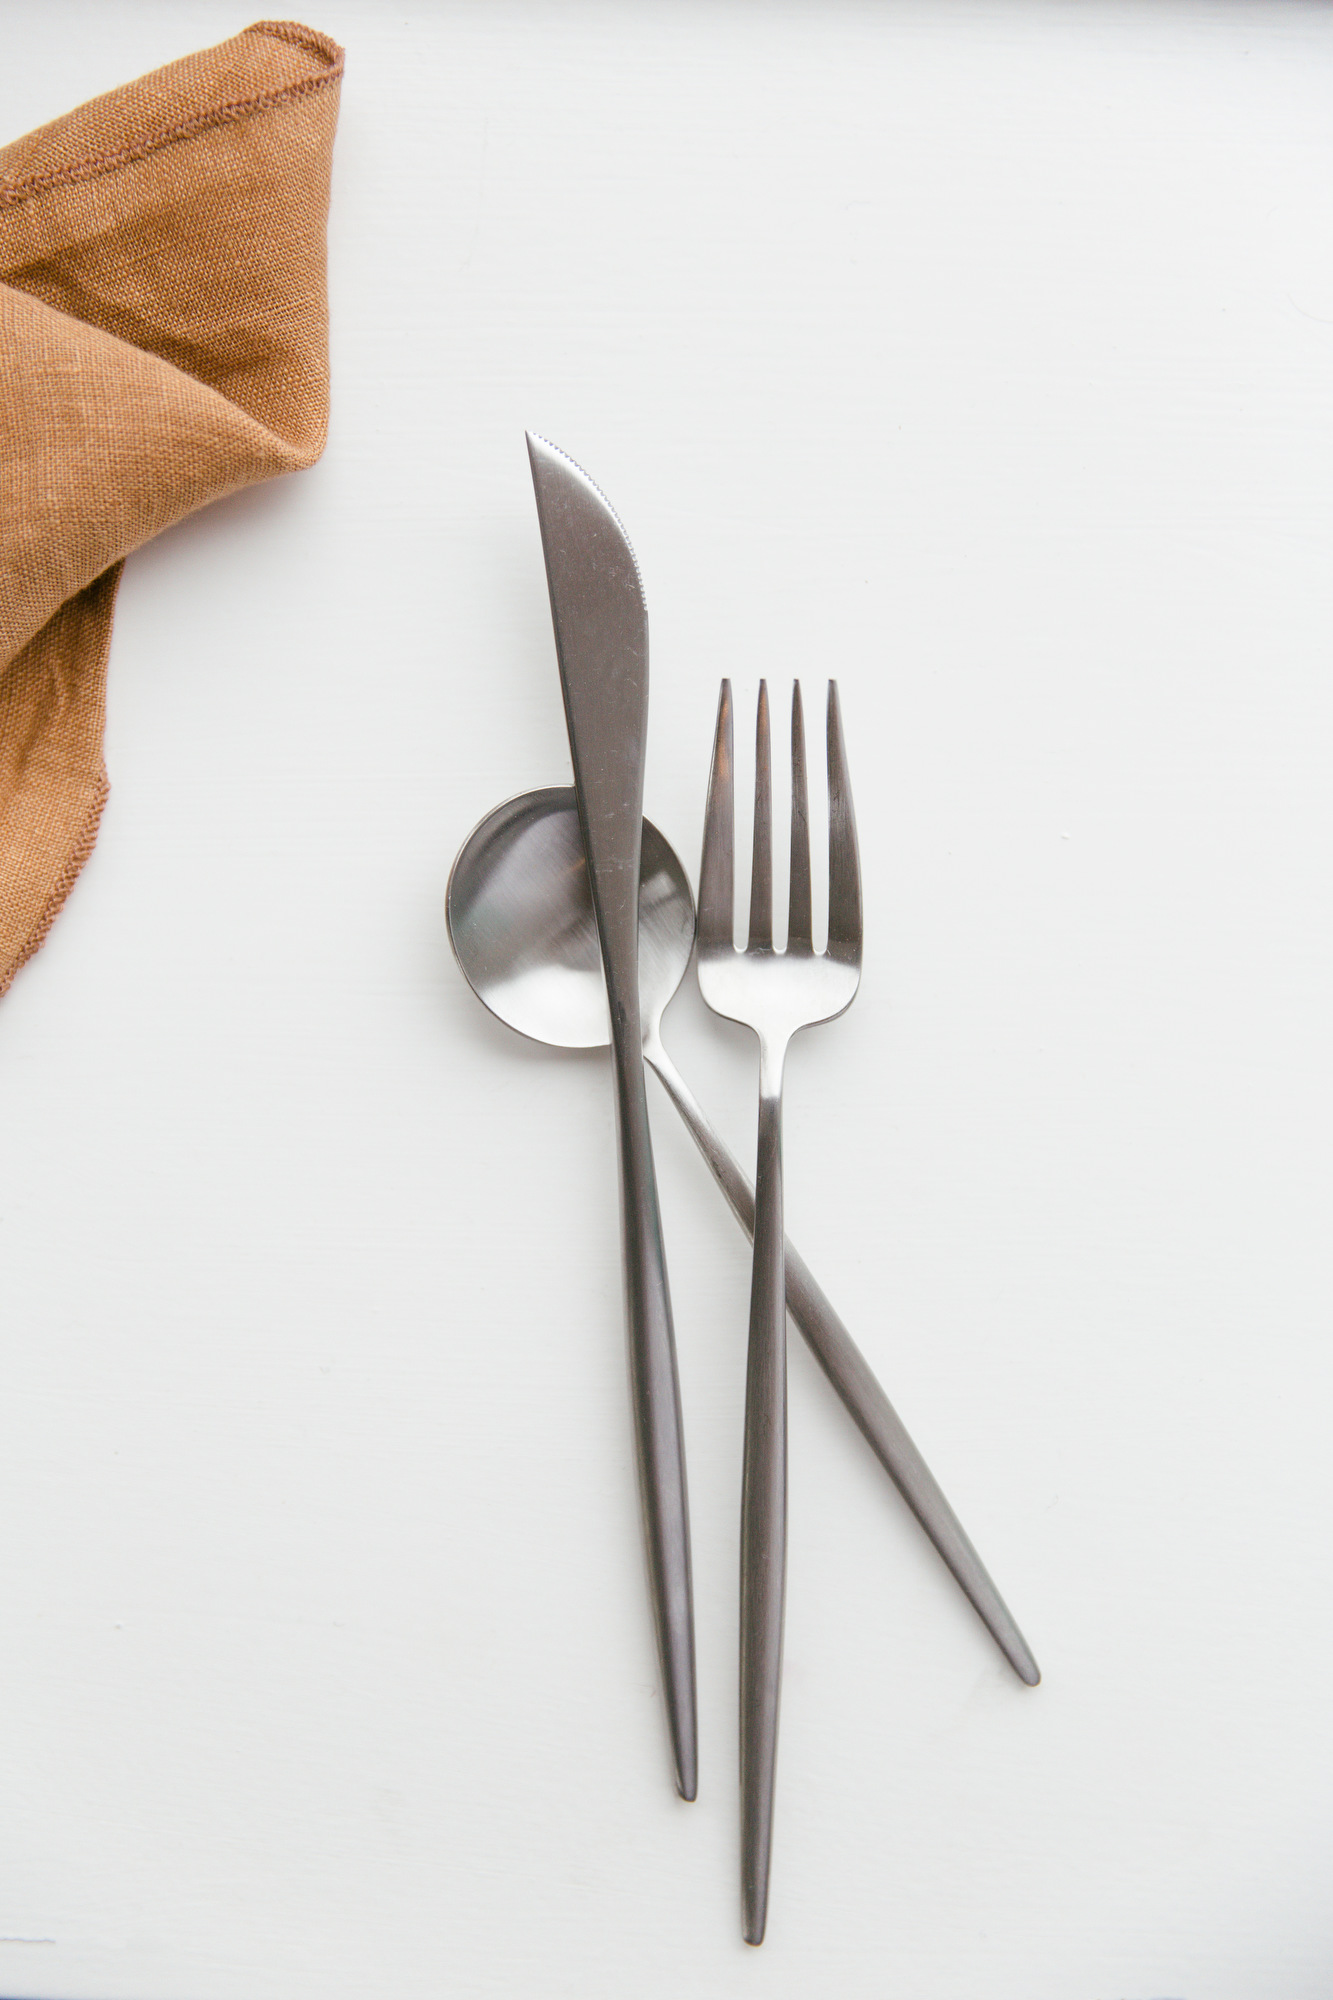 Cutlery | photography & styling by Joske Simmelink